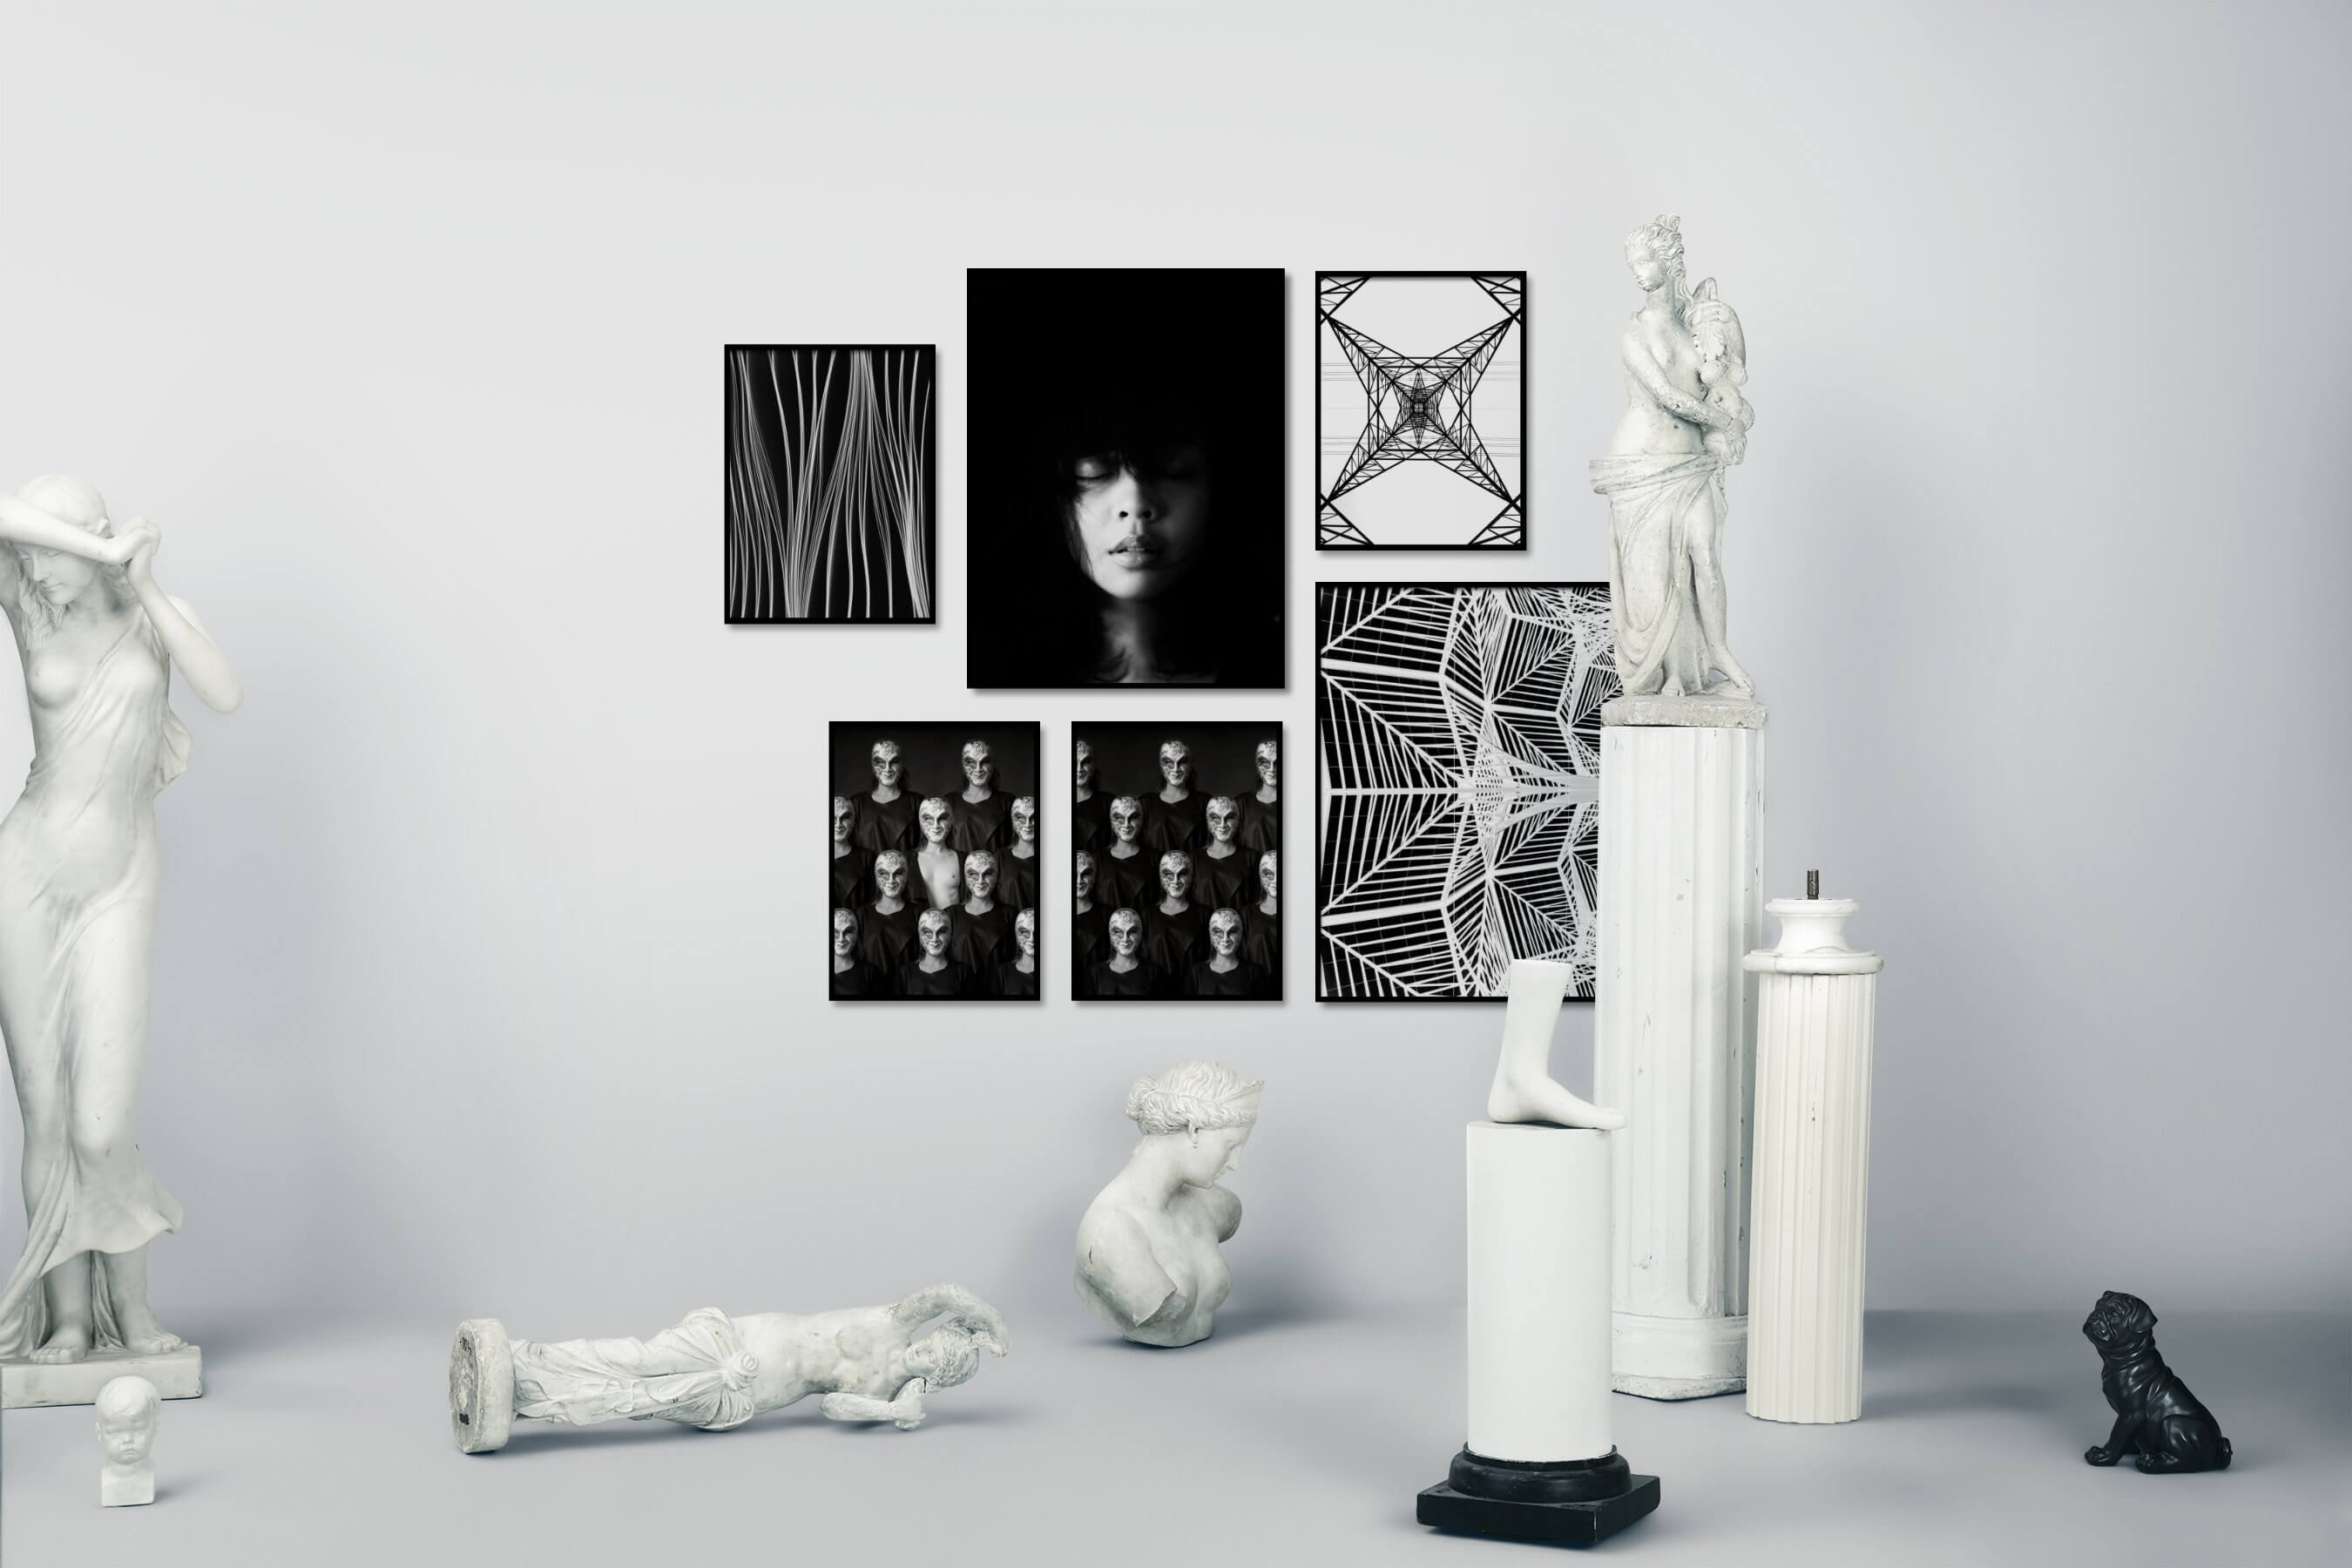 Gallery wall idea with six framed pictures arranged on a wall depicting Black & White, For the Moderate, Fashion & Beauty, Dark Tones, For the Minimalist, Artsy, Bold, and For the Maximalist